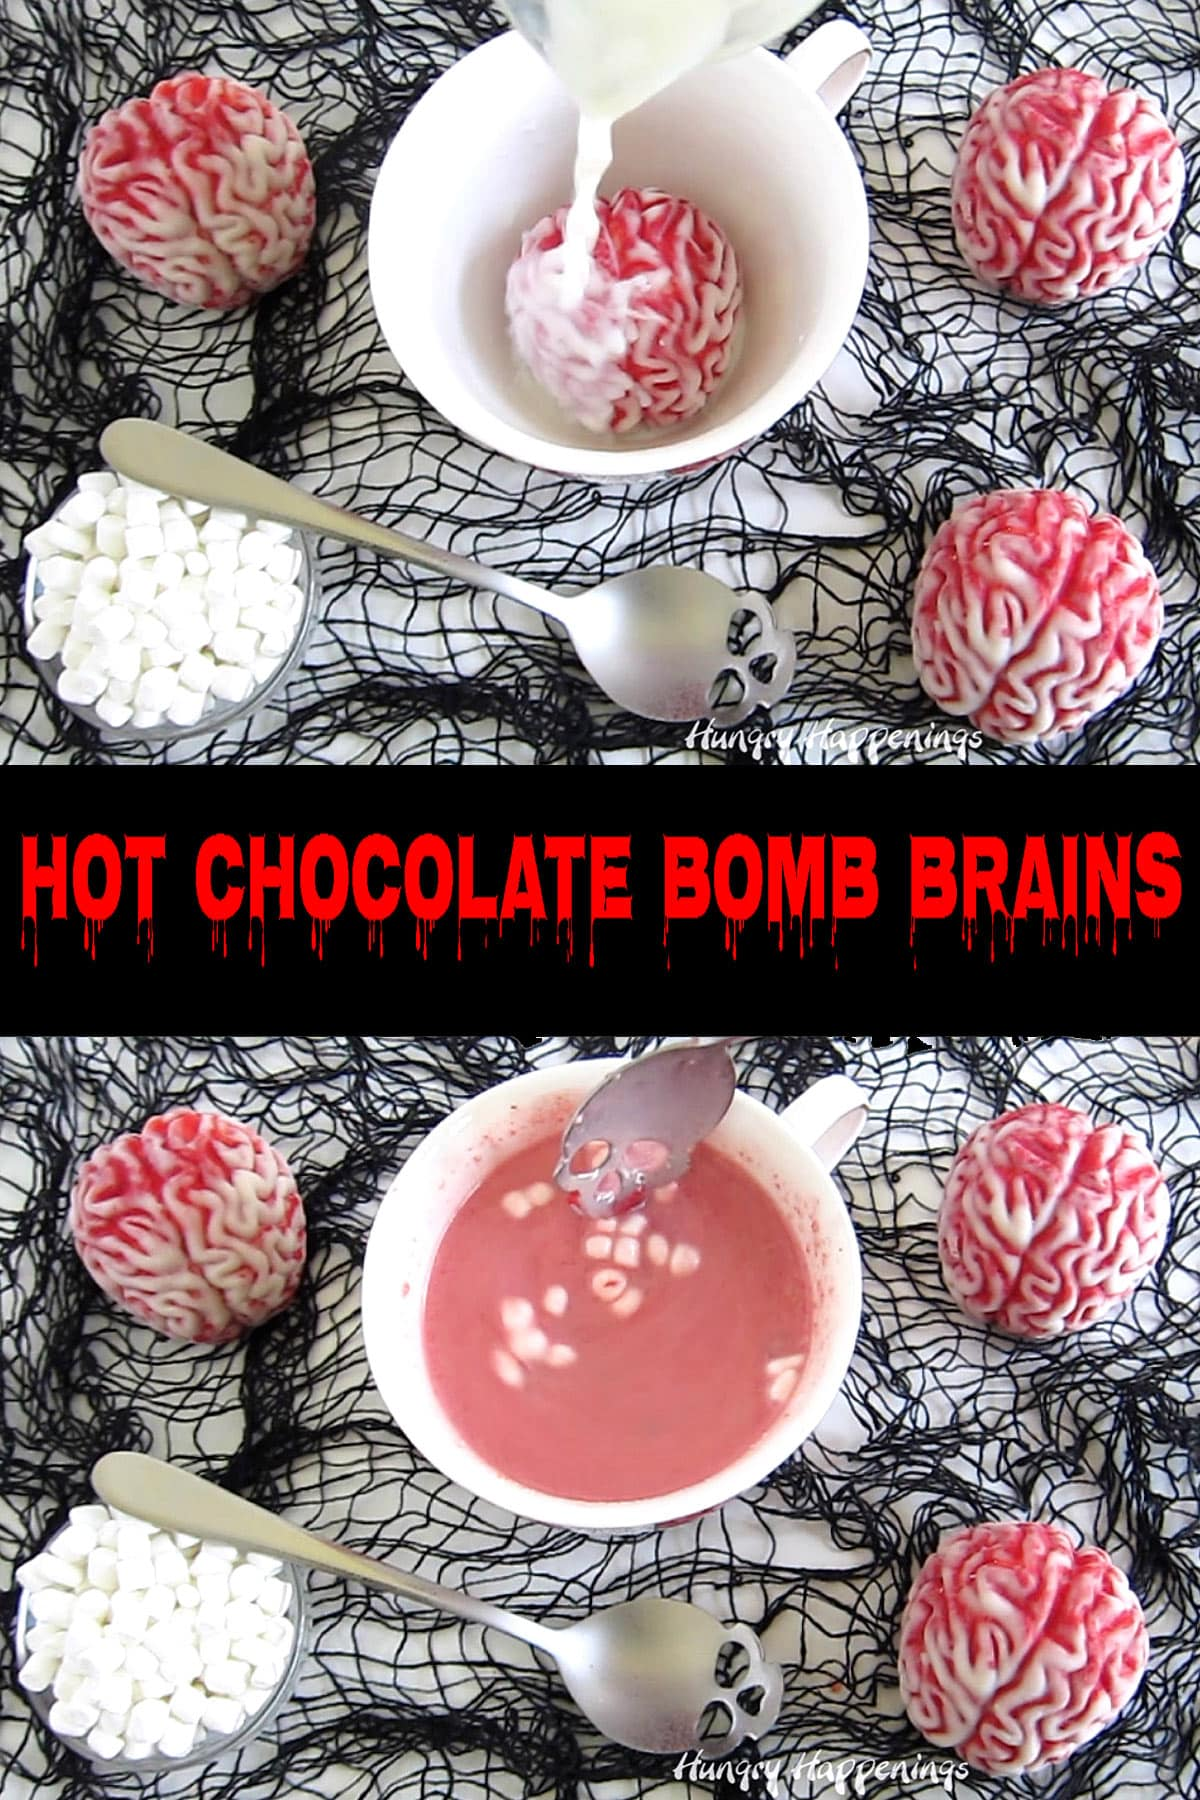 Halloween hot cocoa bomb brains filled with strawberry hot chocolate mix melting into a mug of hot milk.